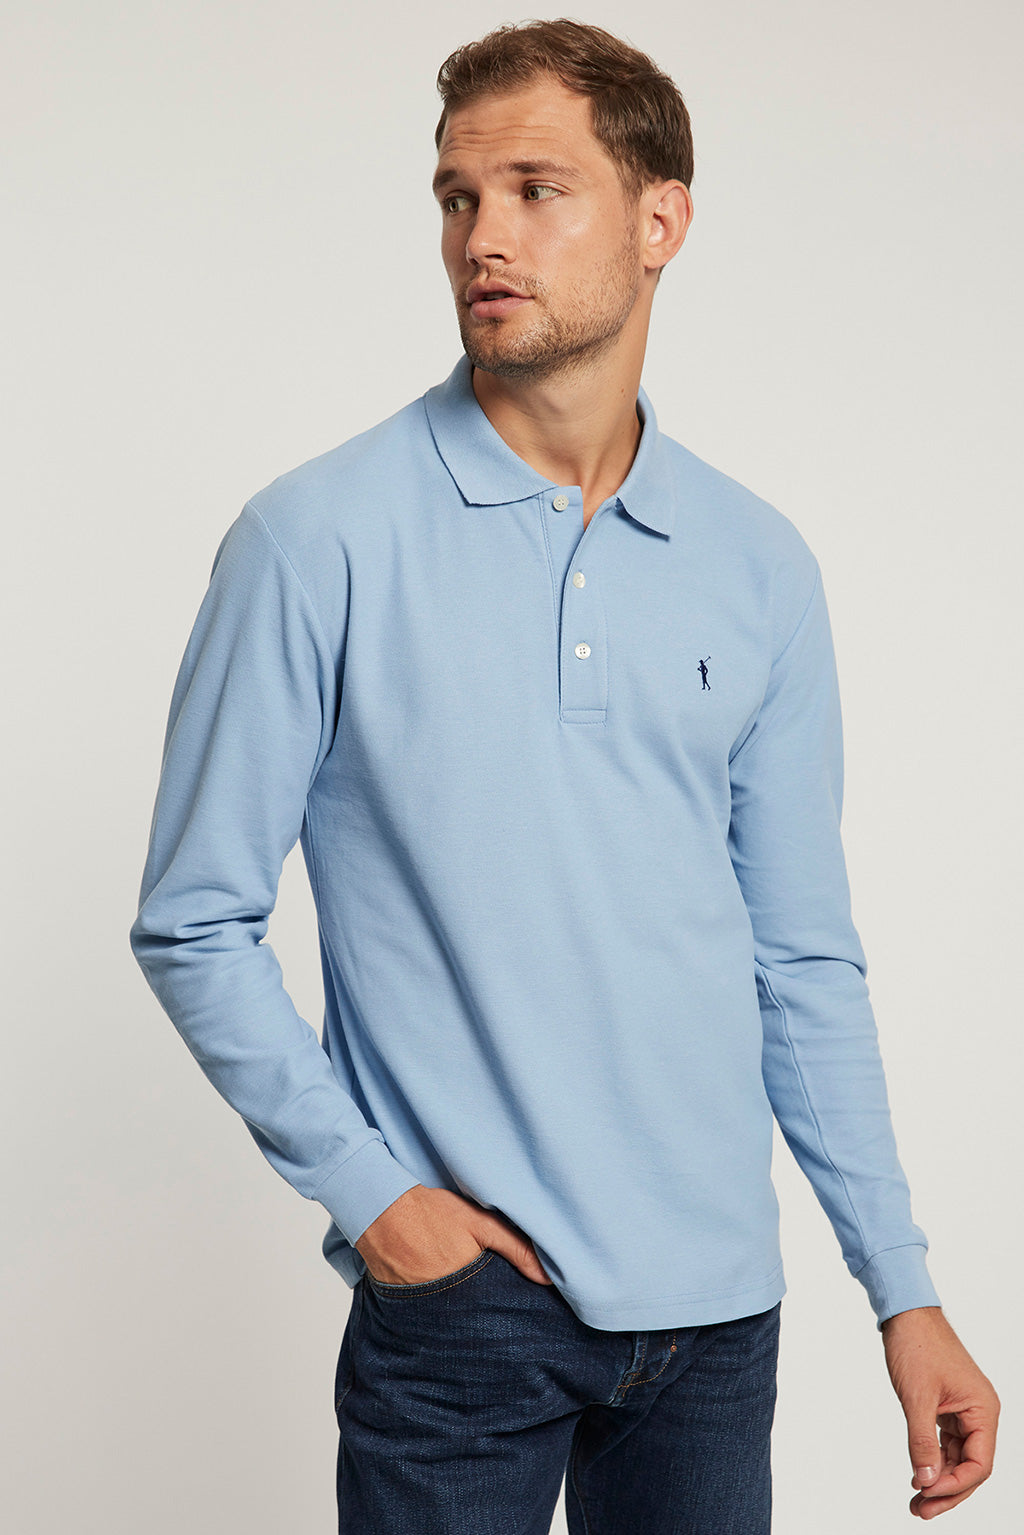 Sky blue long sleeve polo shirt with contrast embroidered logo